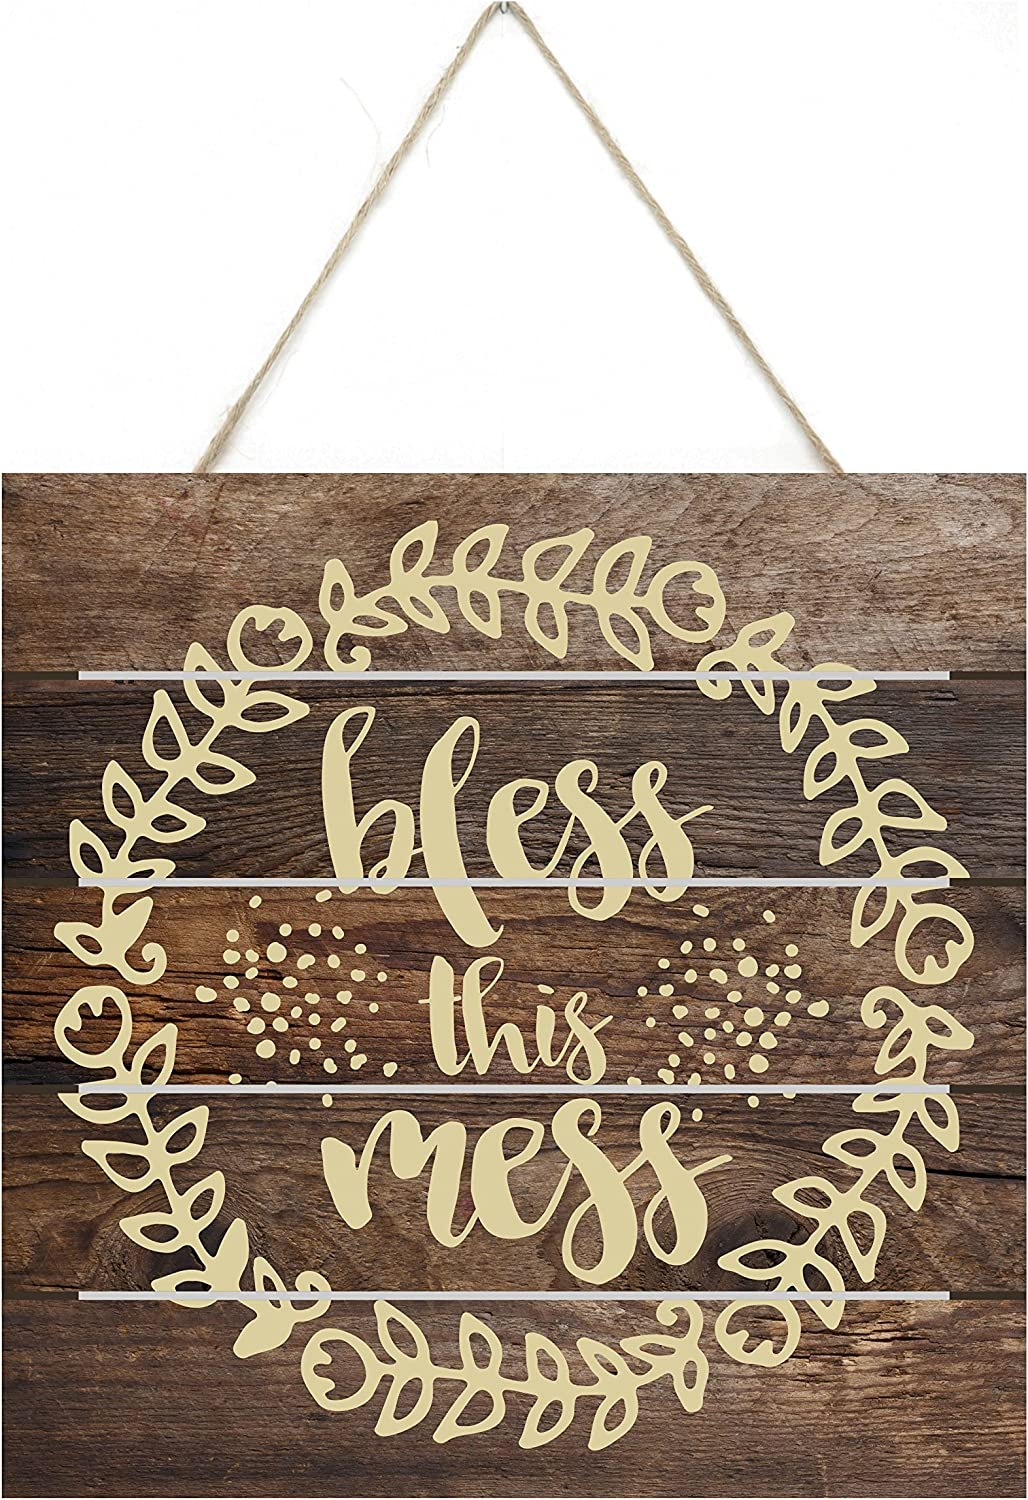 MRC Wood Products Bless This Mess Rustic Wooden Plank Sign 8x8